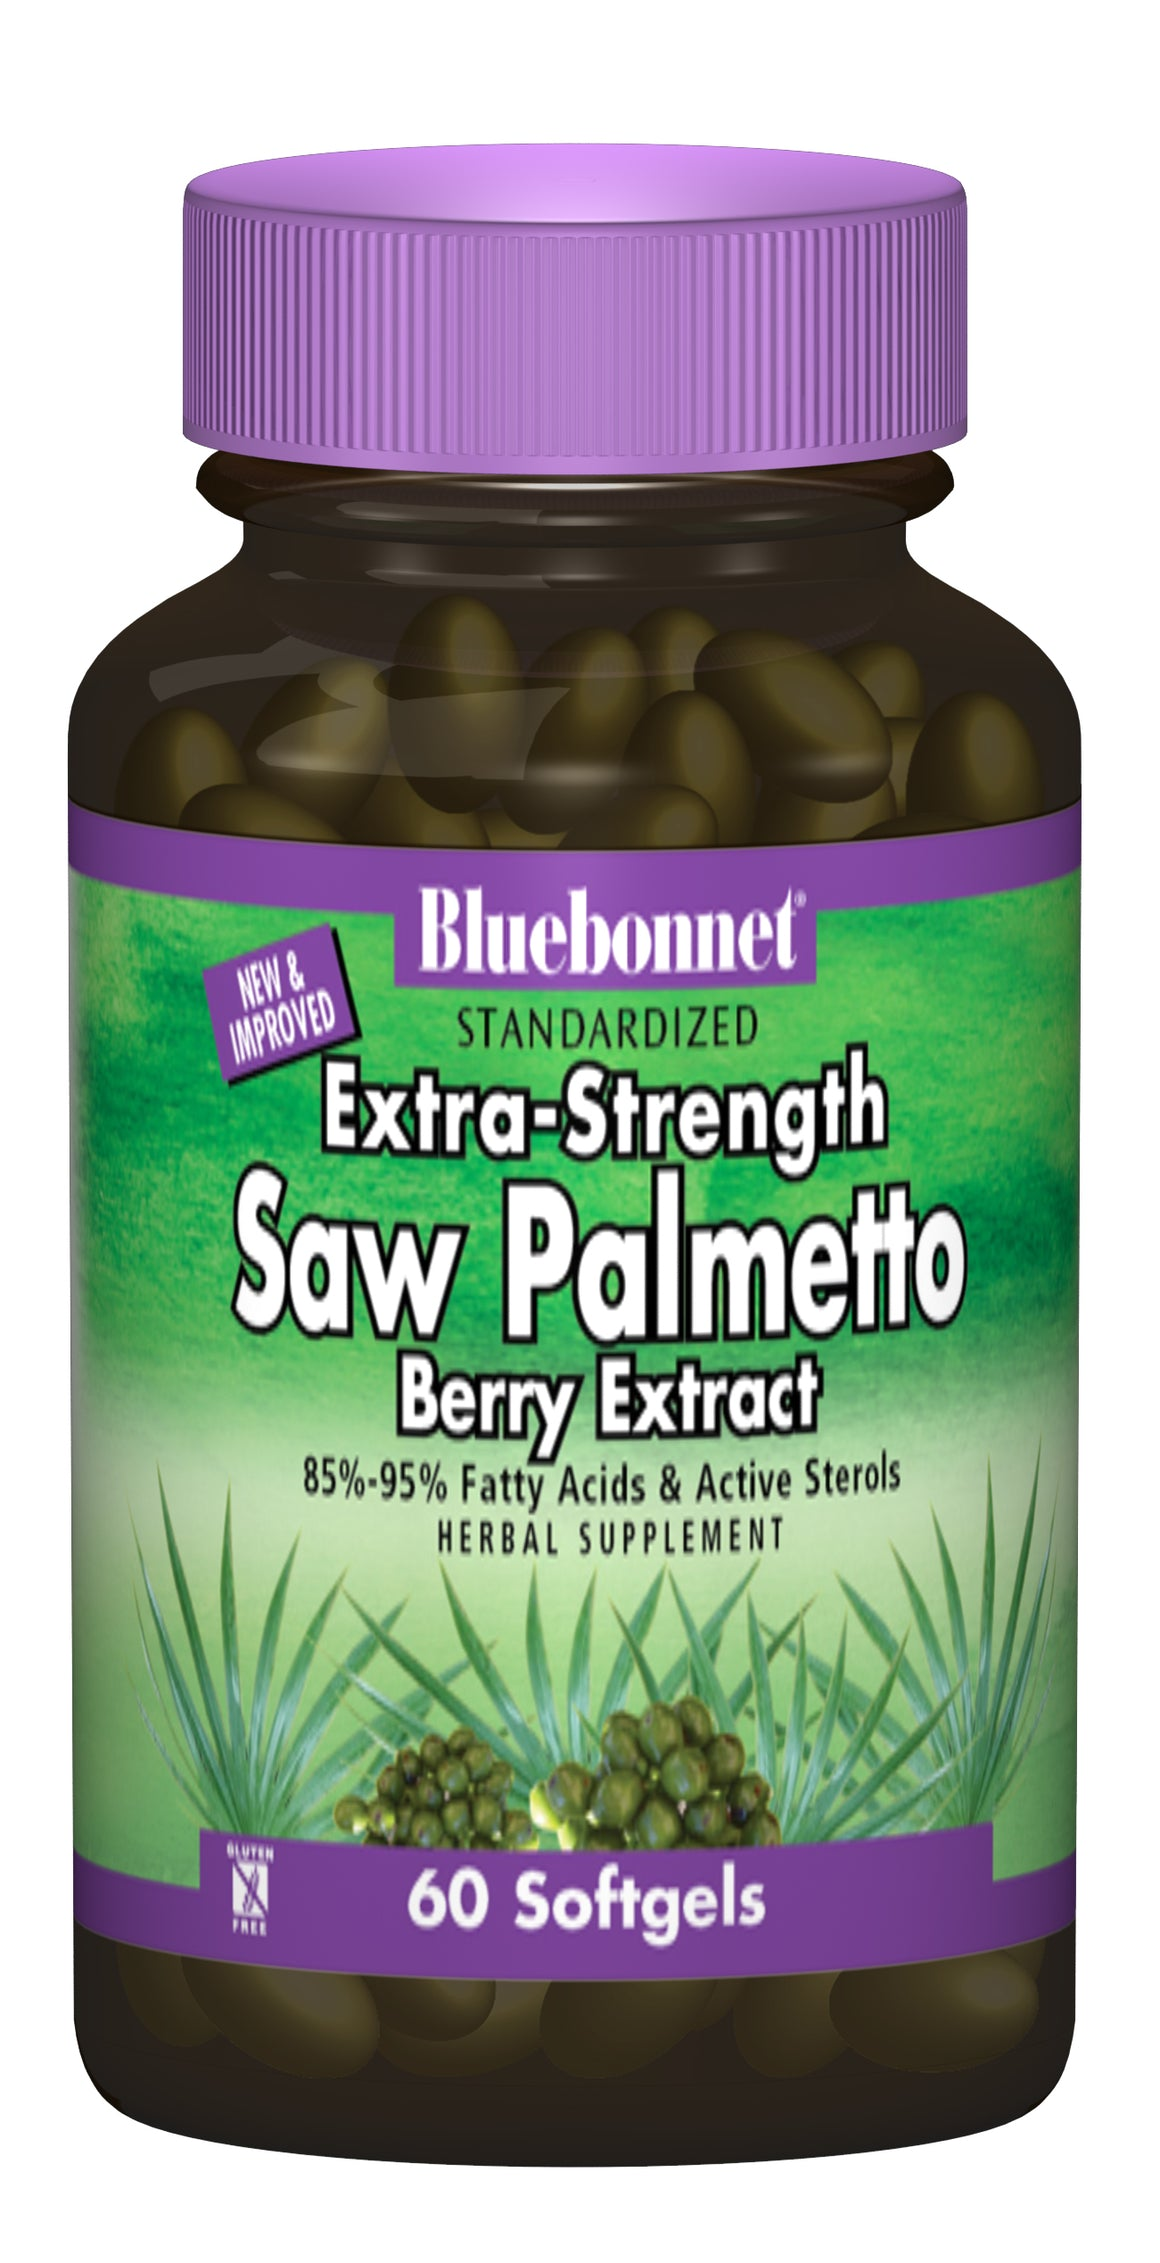 A bottle of Bluebonnet Extra-Strength Saw Palmetto Berry Extract